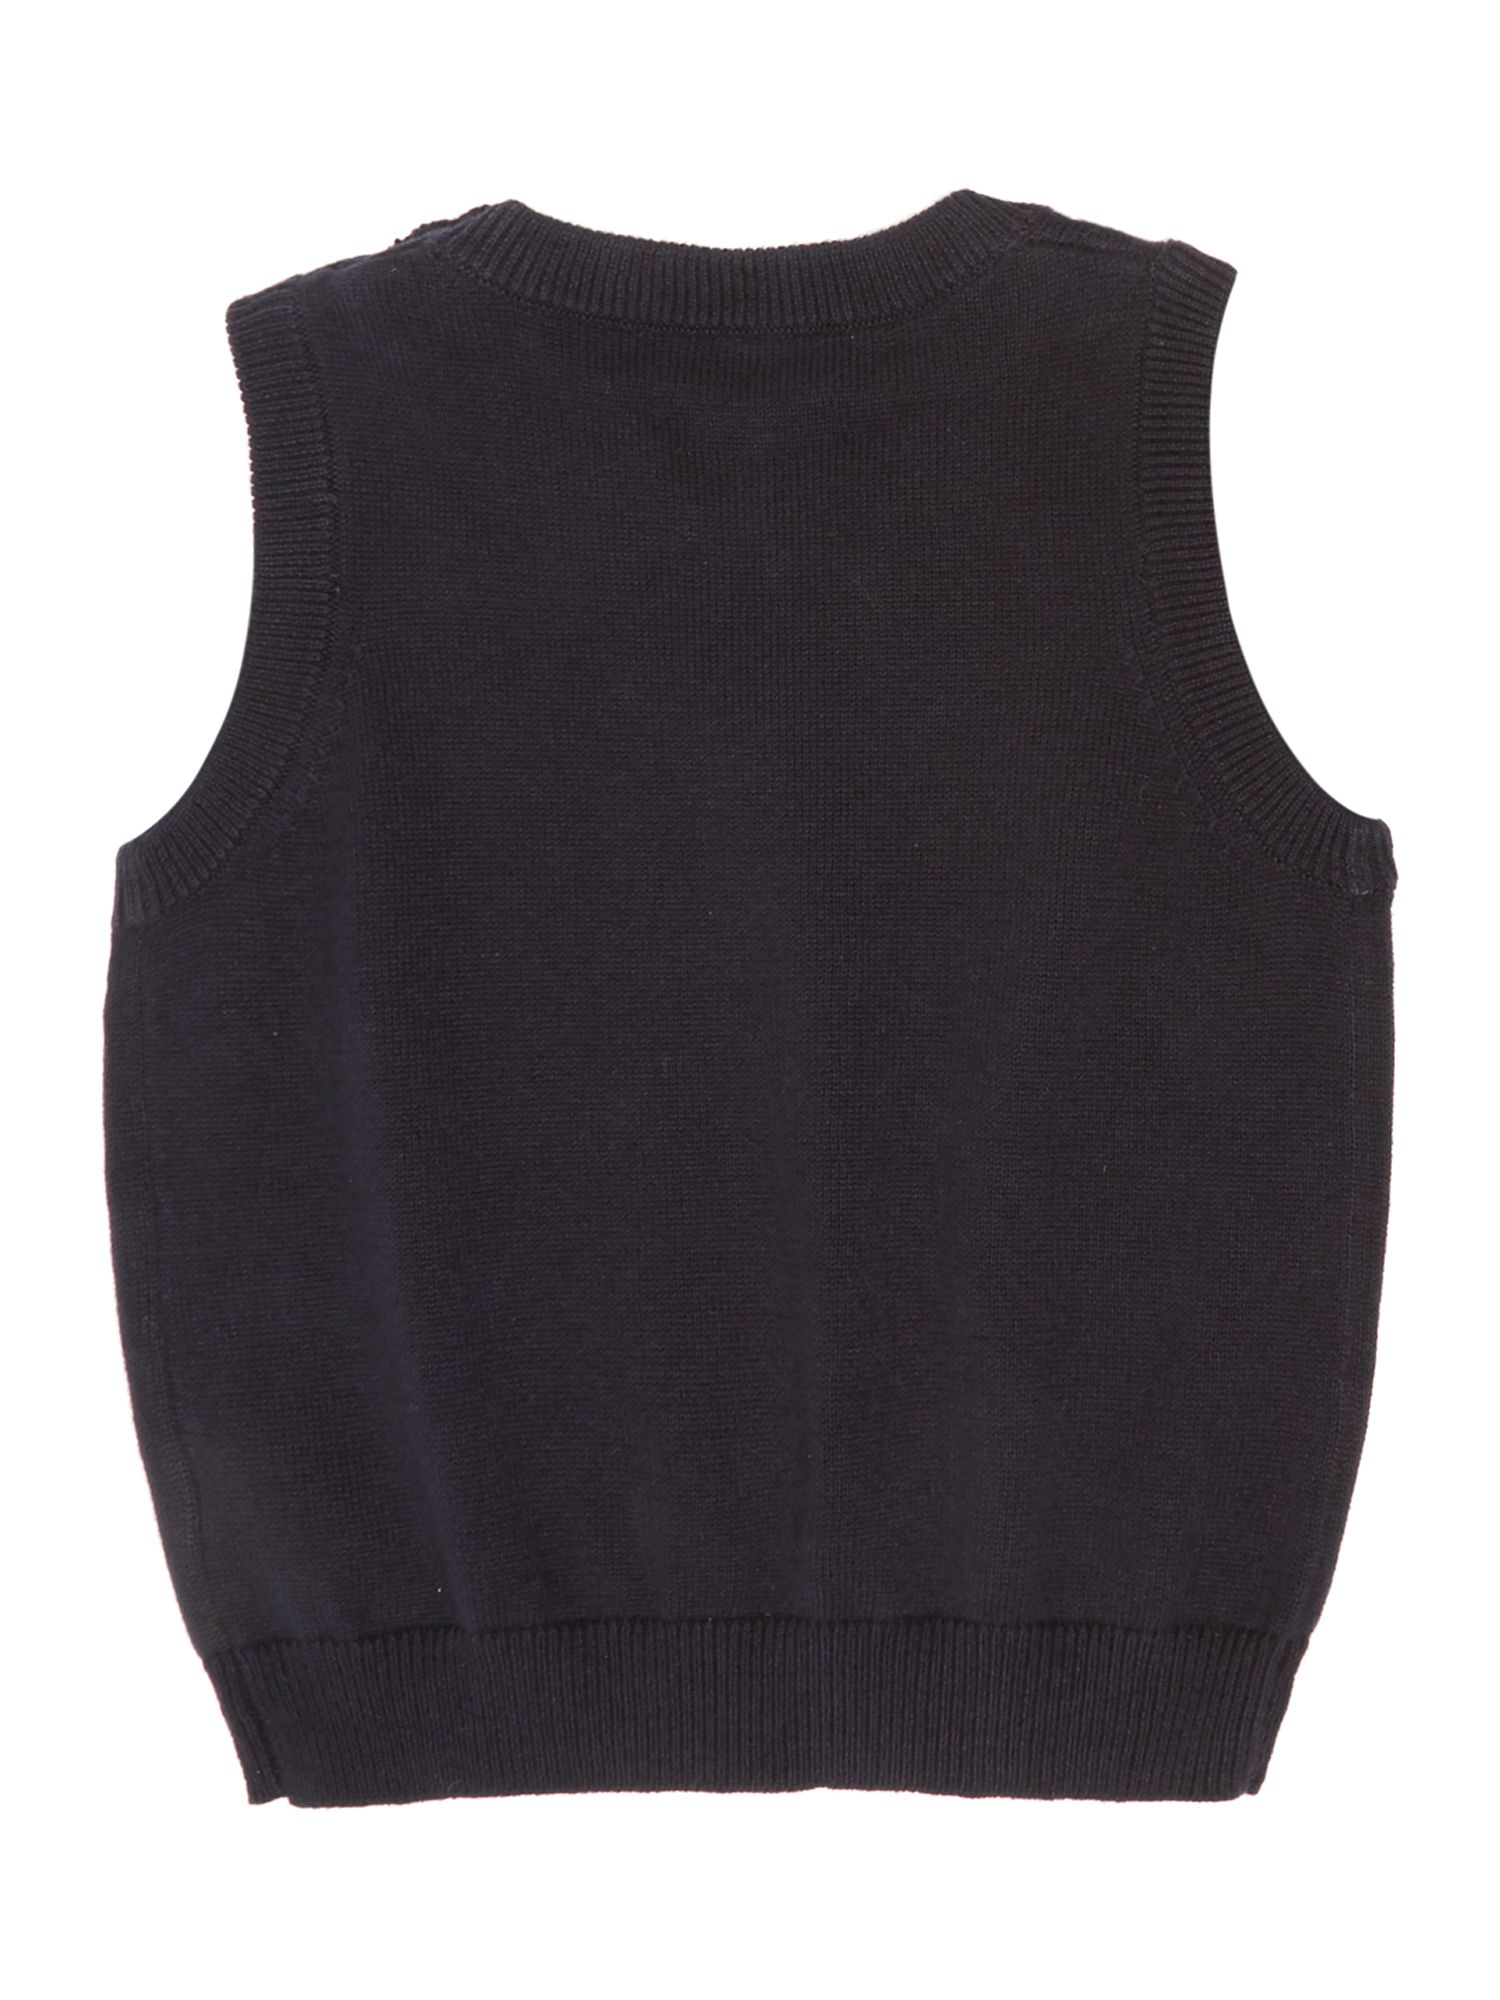 Boys V-neck pullover knit